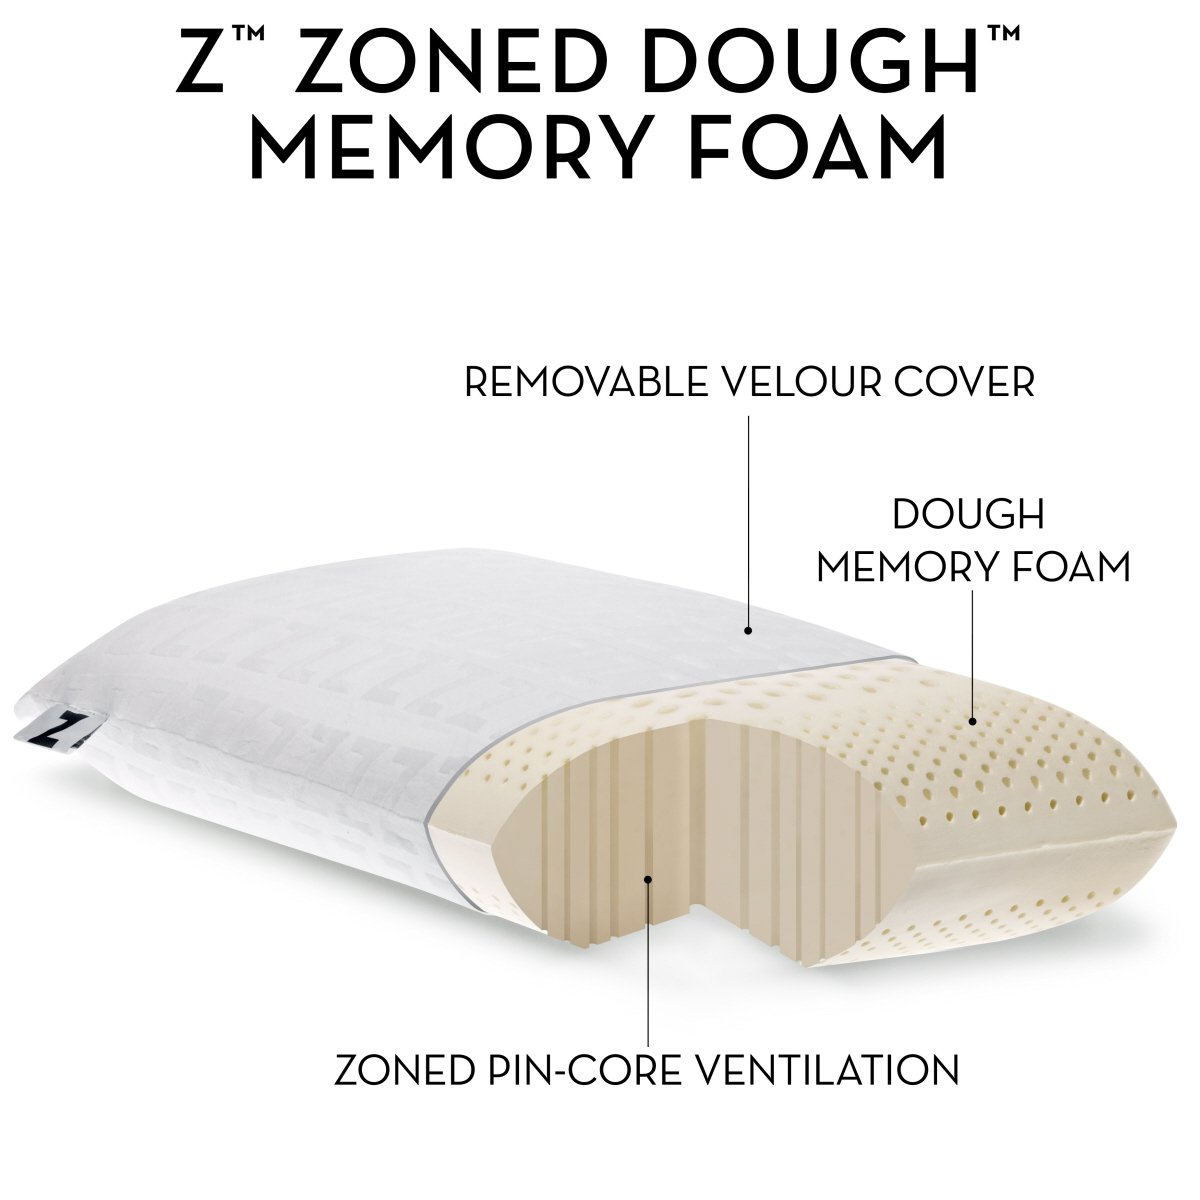 tempurpedic pillow photo for tremendousour good pillows foam protective gallery pain memory kupon neck cushion reviews are ideas